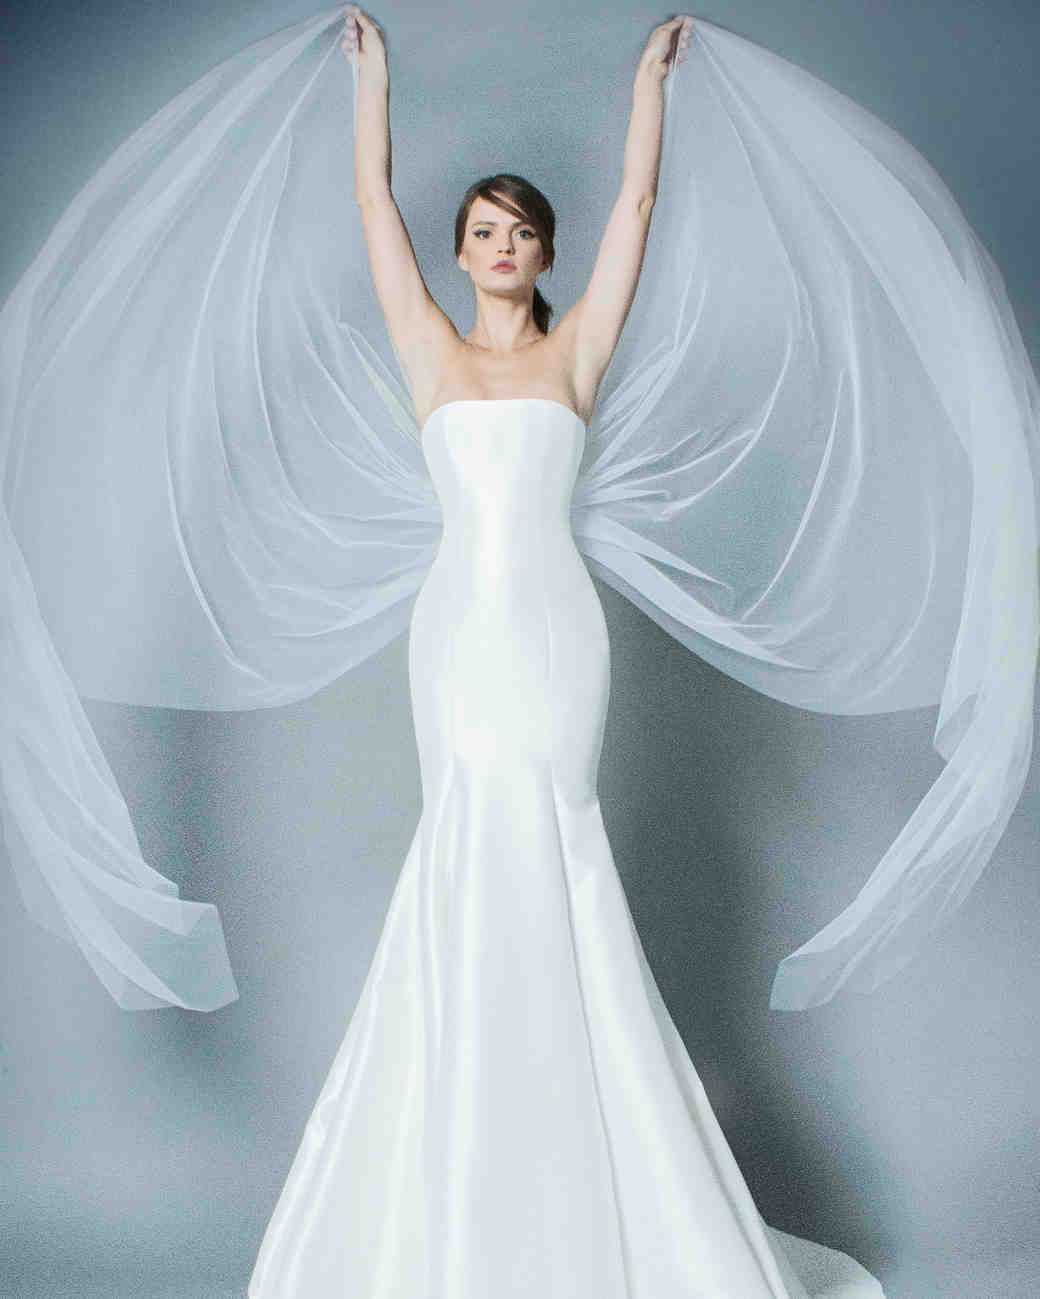 Enchanting Win Your Wedding Dress Frieze - All Wedding Dresses ...